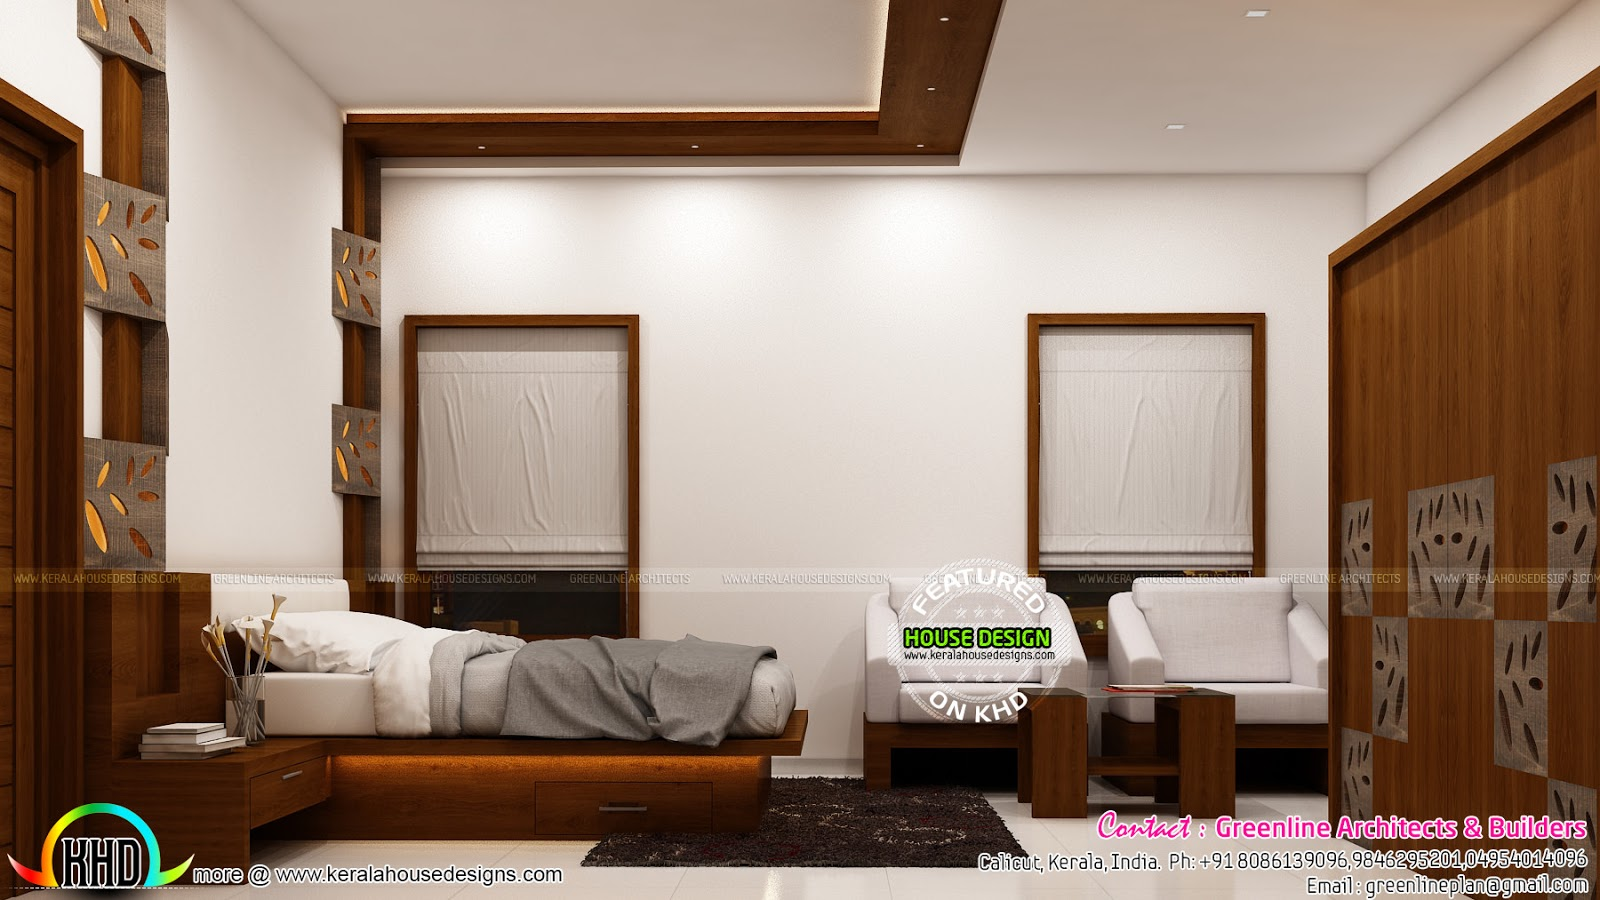 Interior designs of master bedroom kerala home design for Kerala interior designs